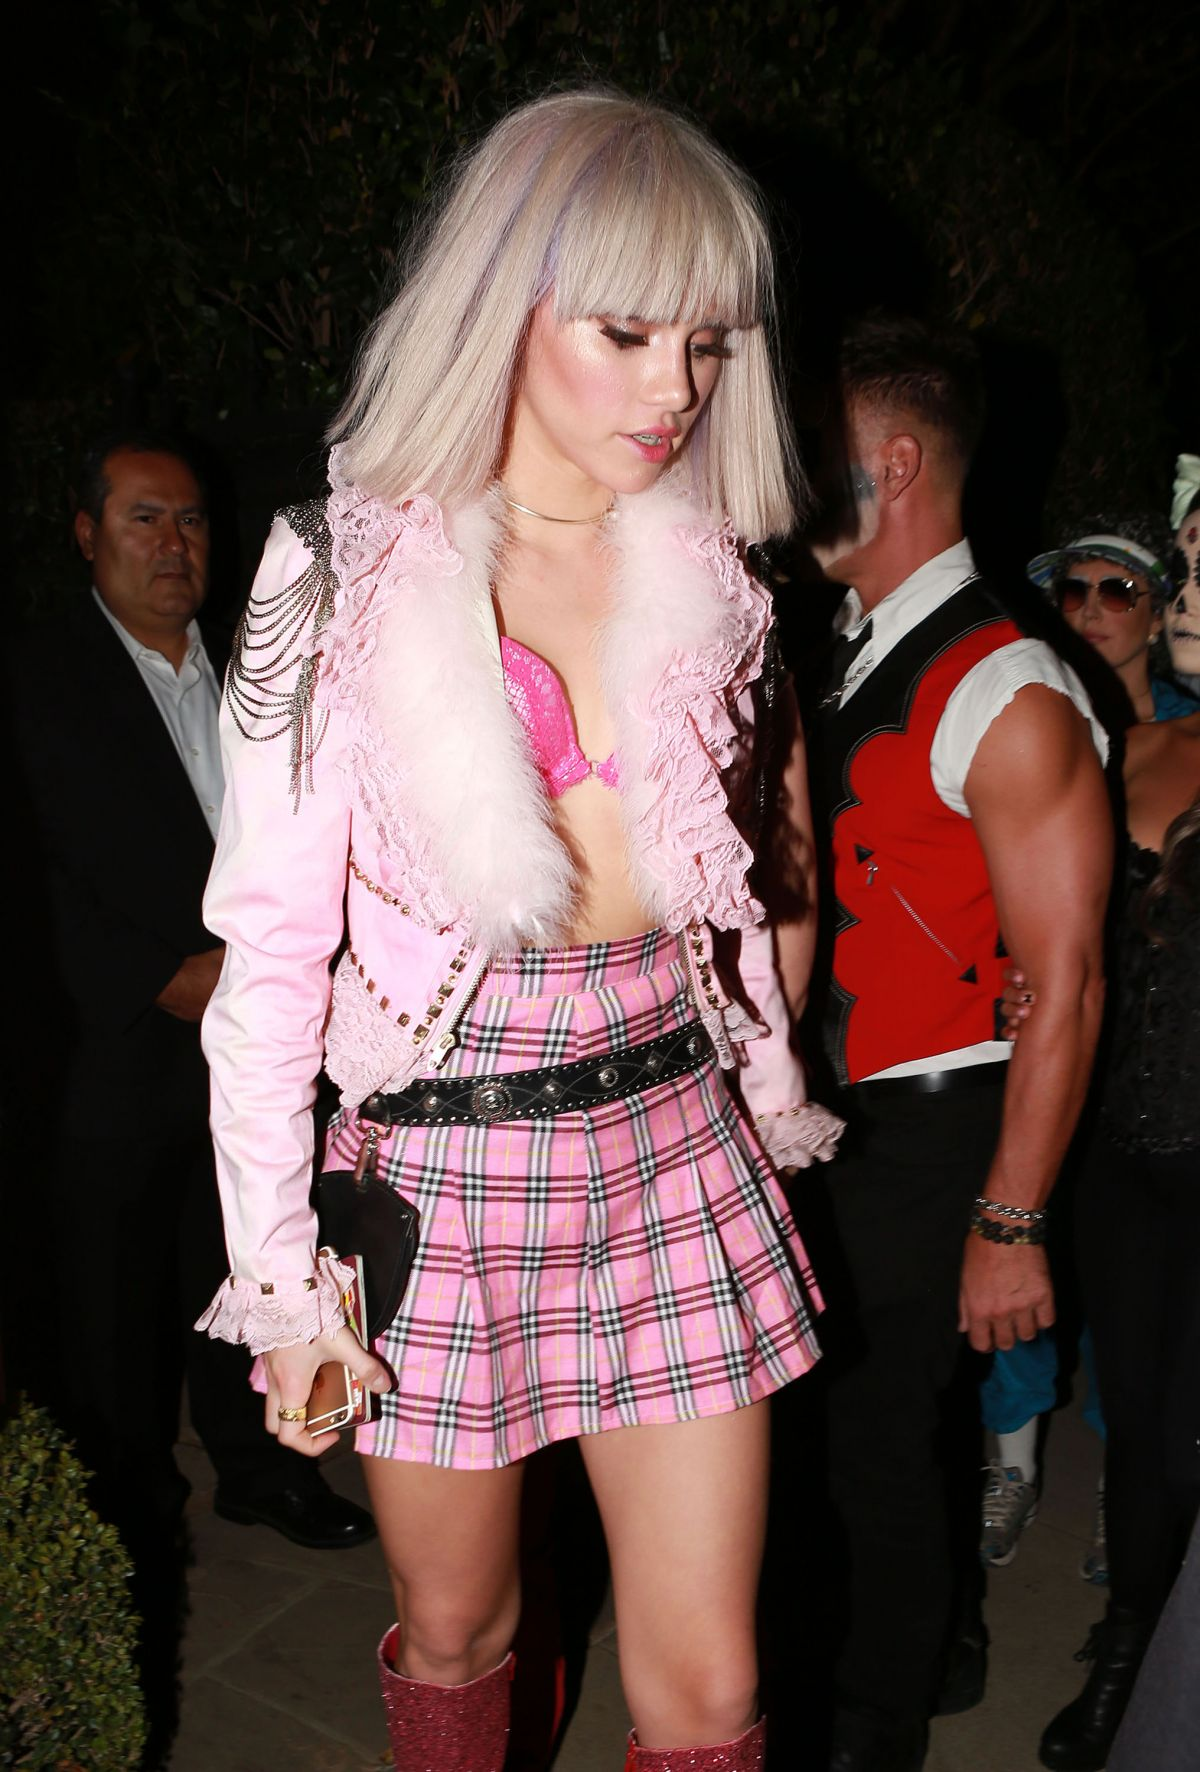 SUKI WATERHOUSE at Casamigos Halloween Party 10/30/2015